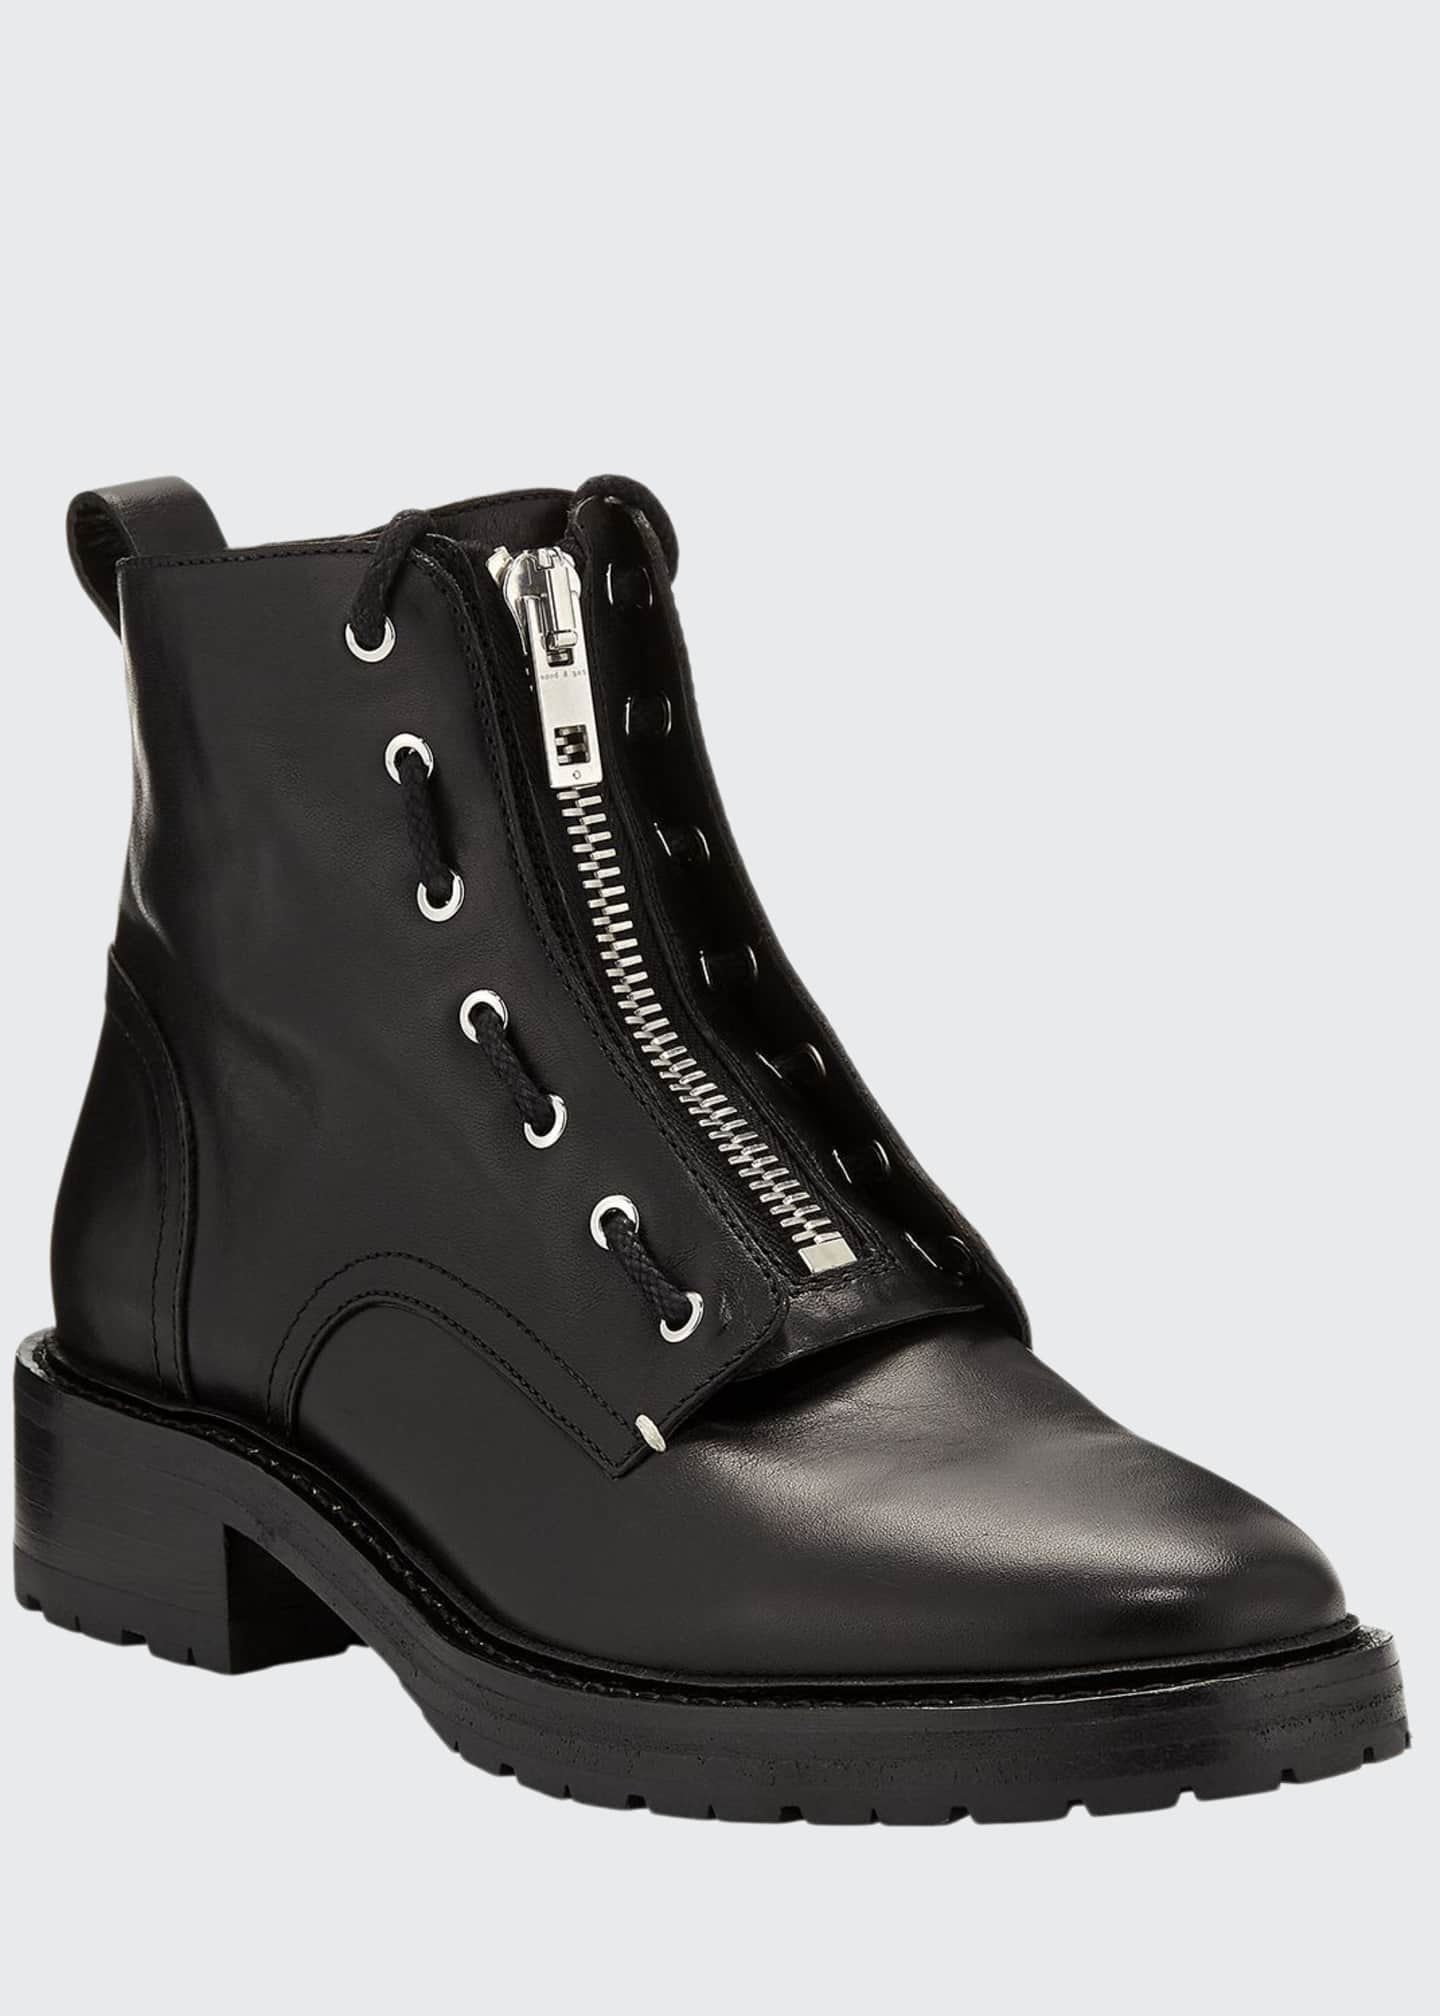 Cannon Leather Combat Boots by Rag & Bone